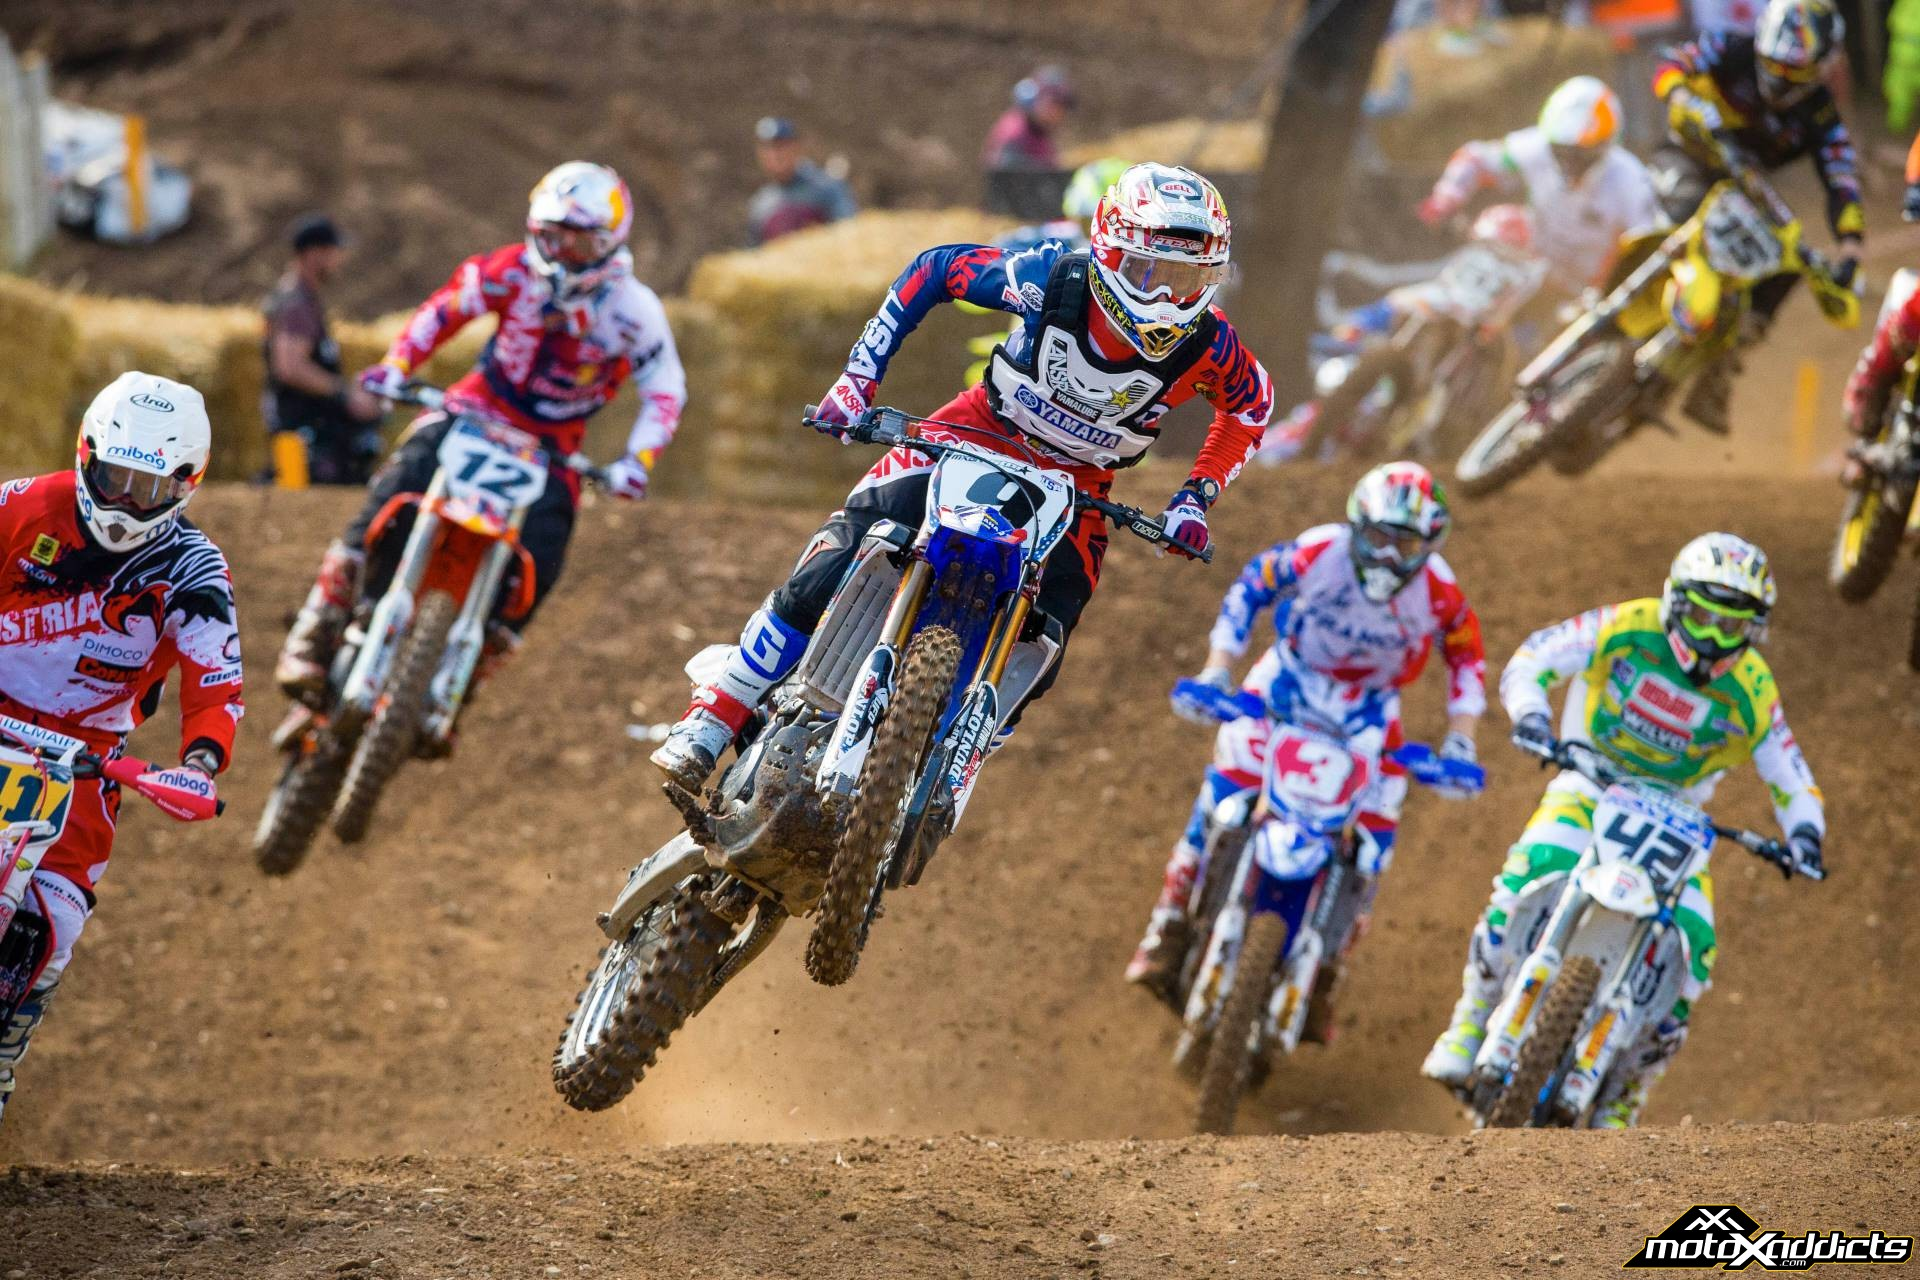 Cooper yanked the holeshot from the outside gate pick in moto 2.